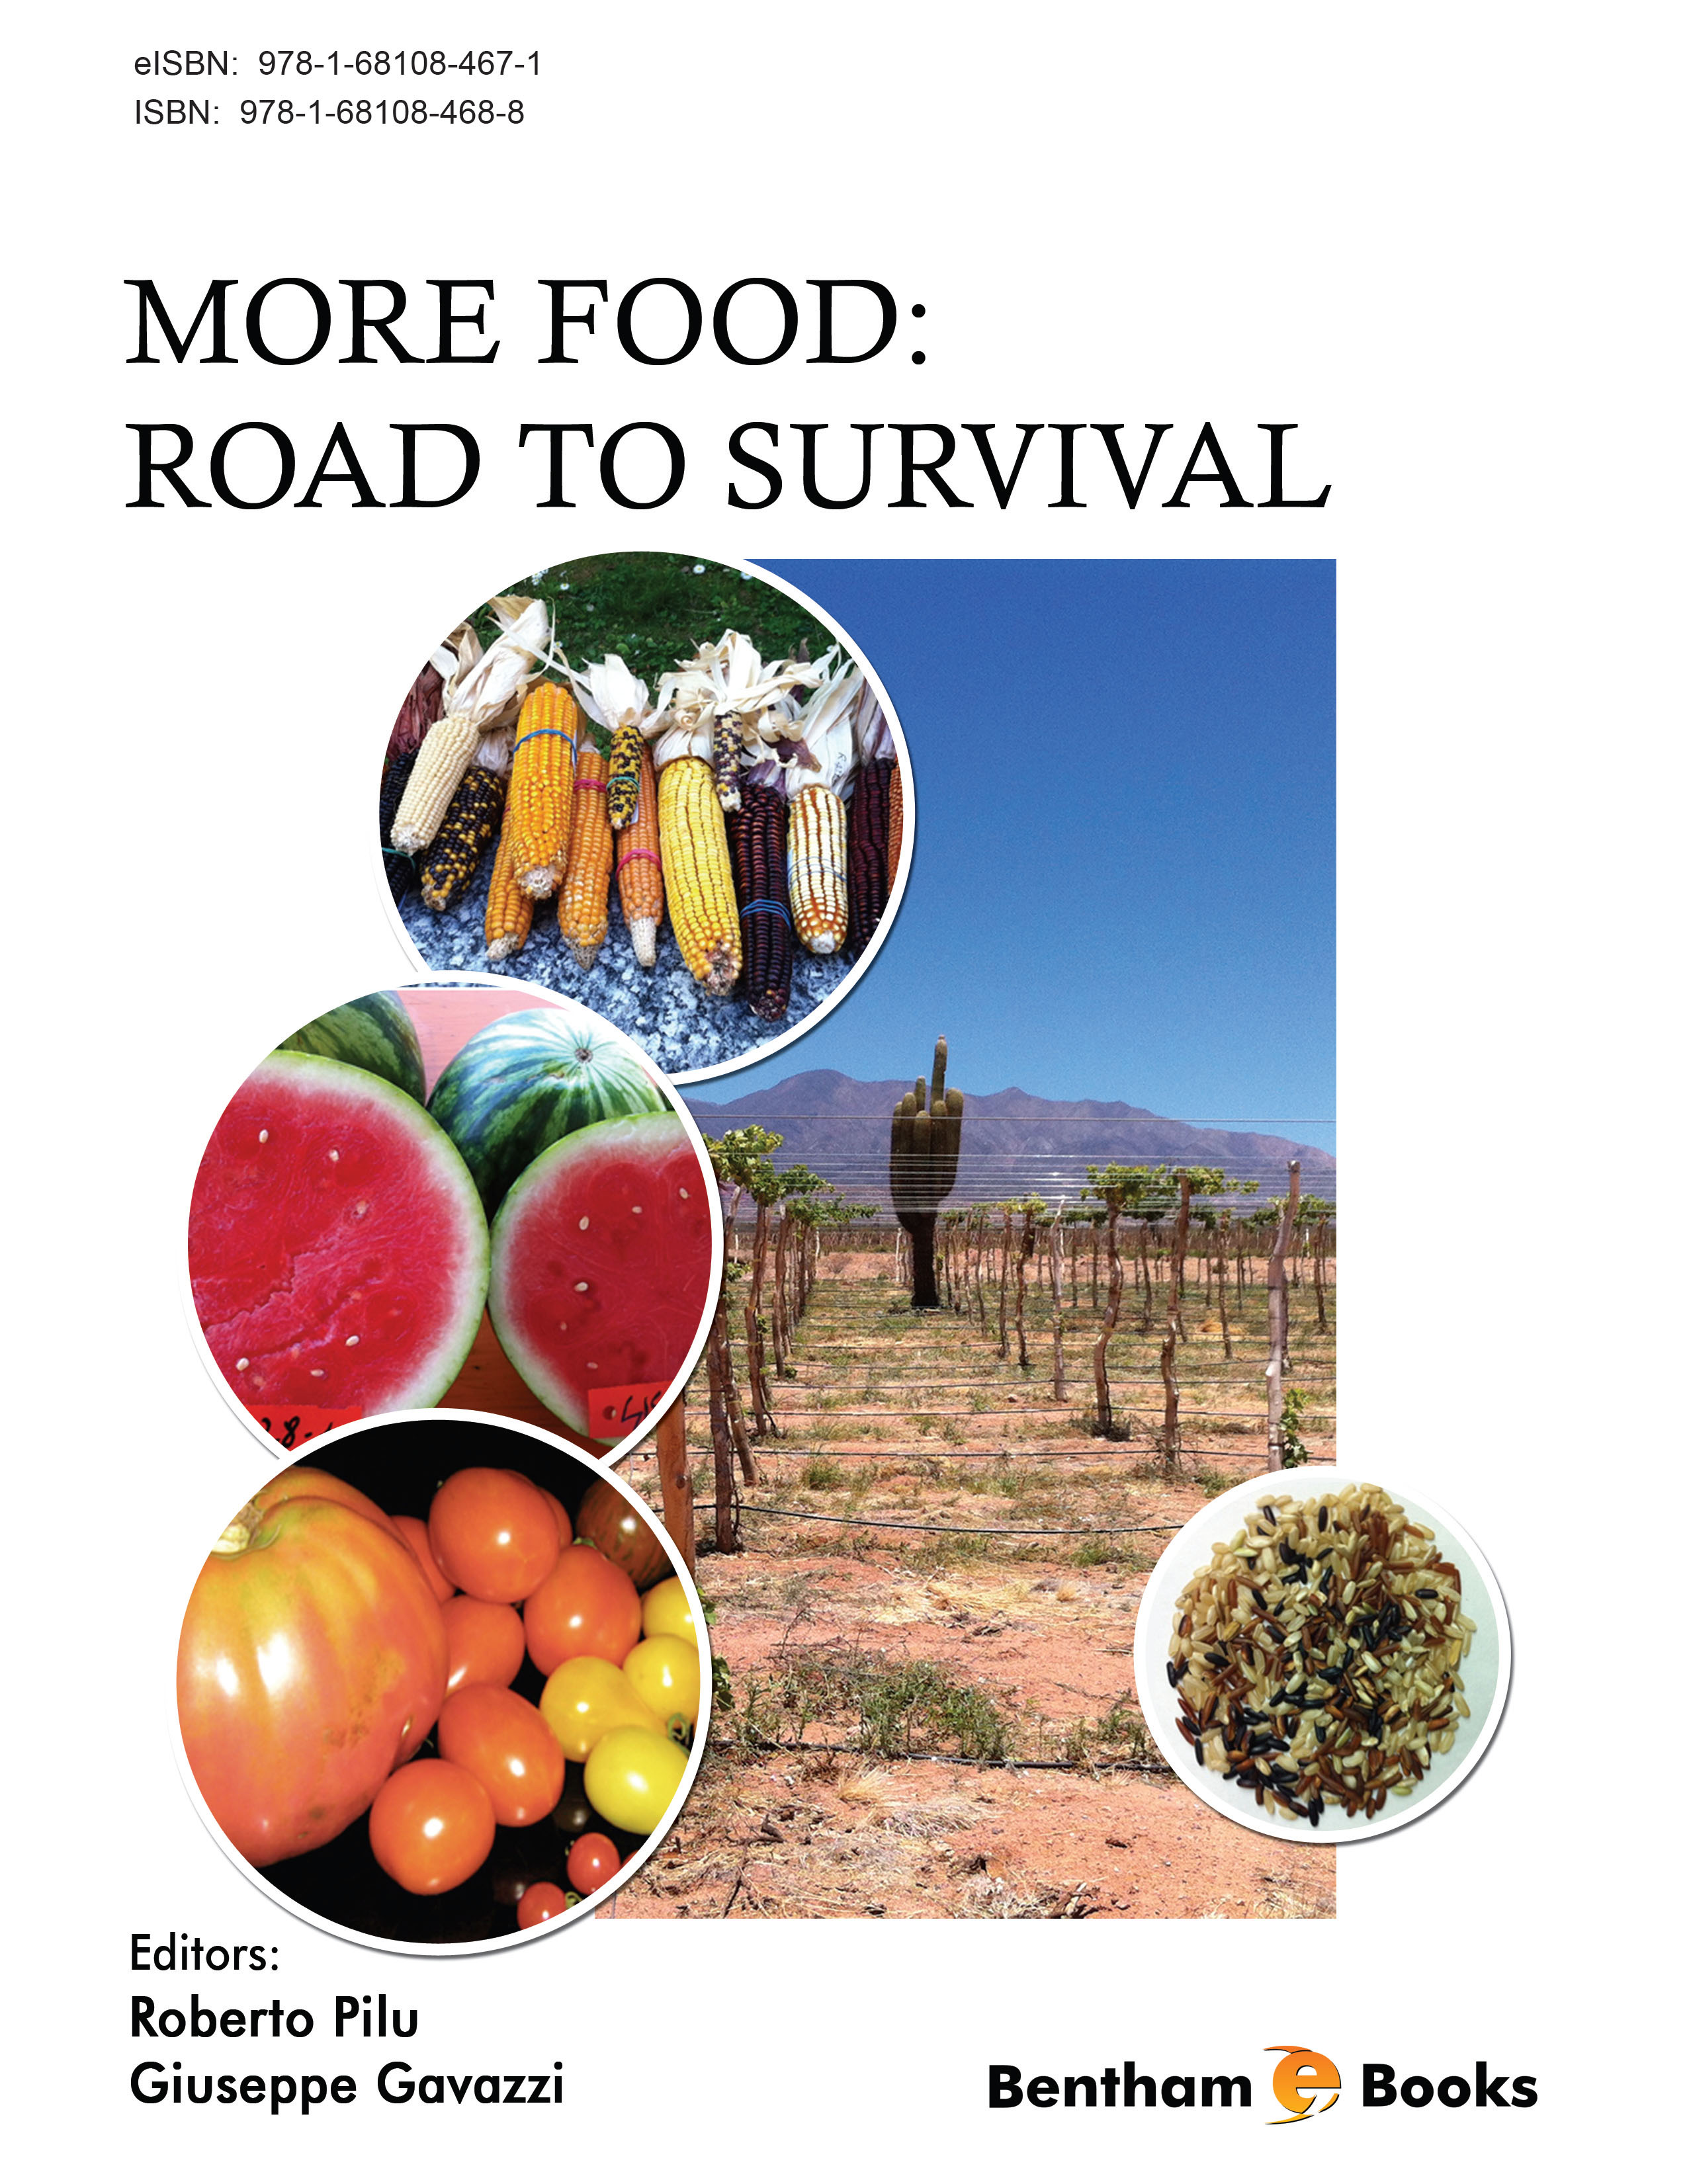 More Food: Road to Survival